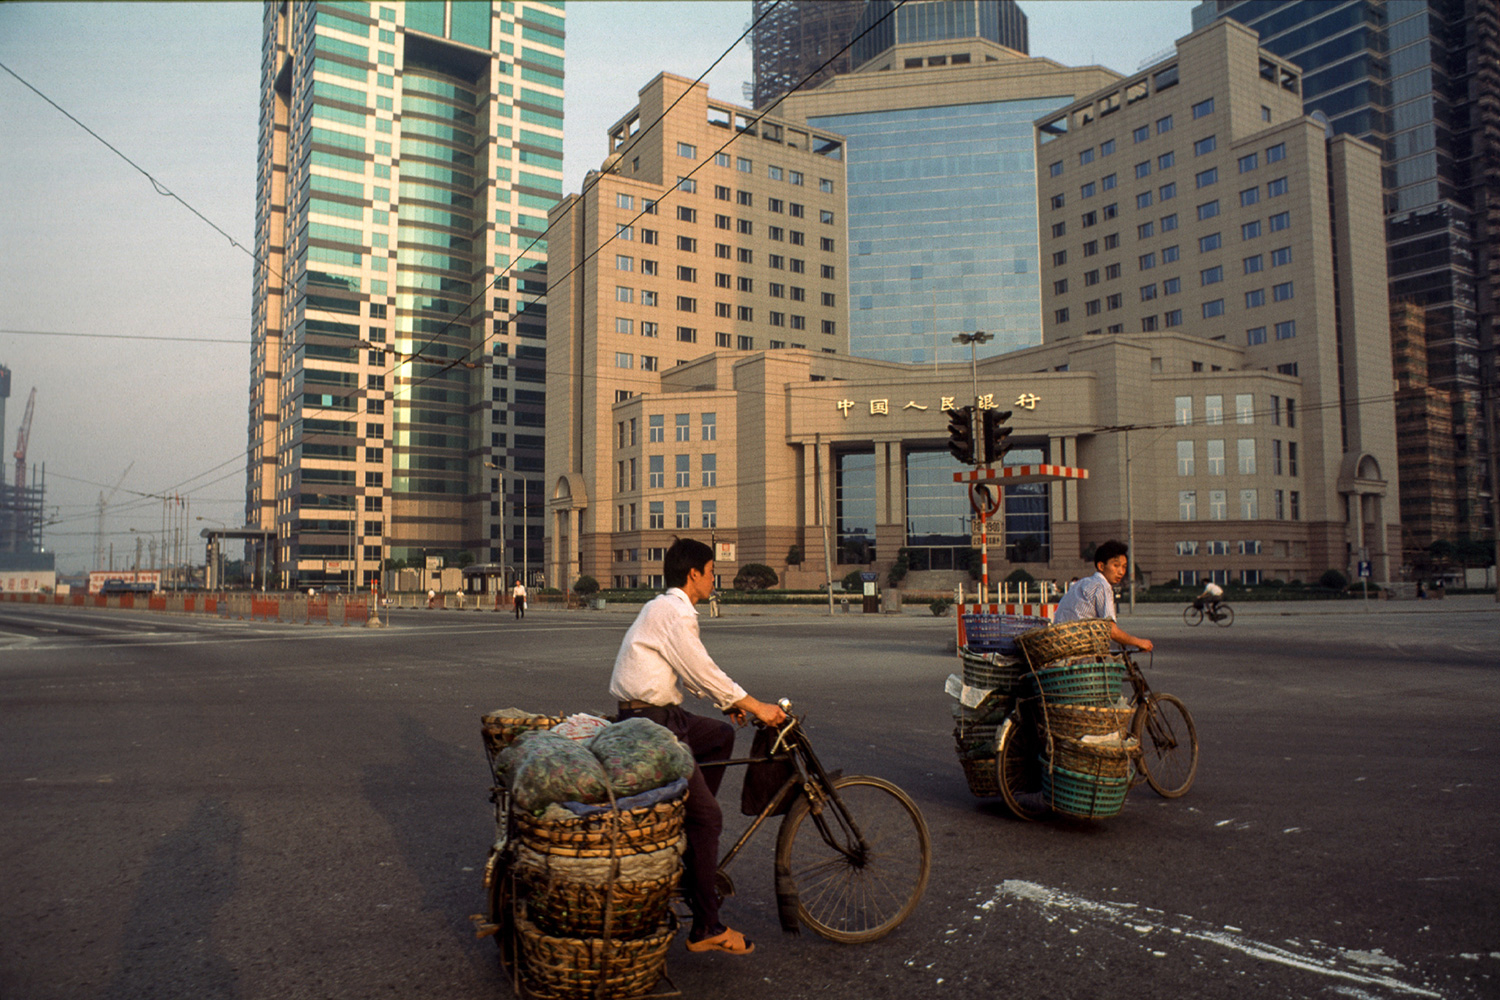 Farmers pedal their produce by bicycle past the yet unopened People's Bank of China, 1996.